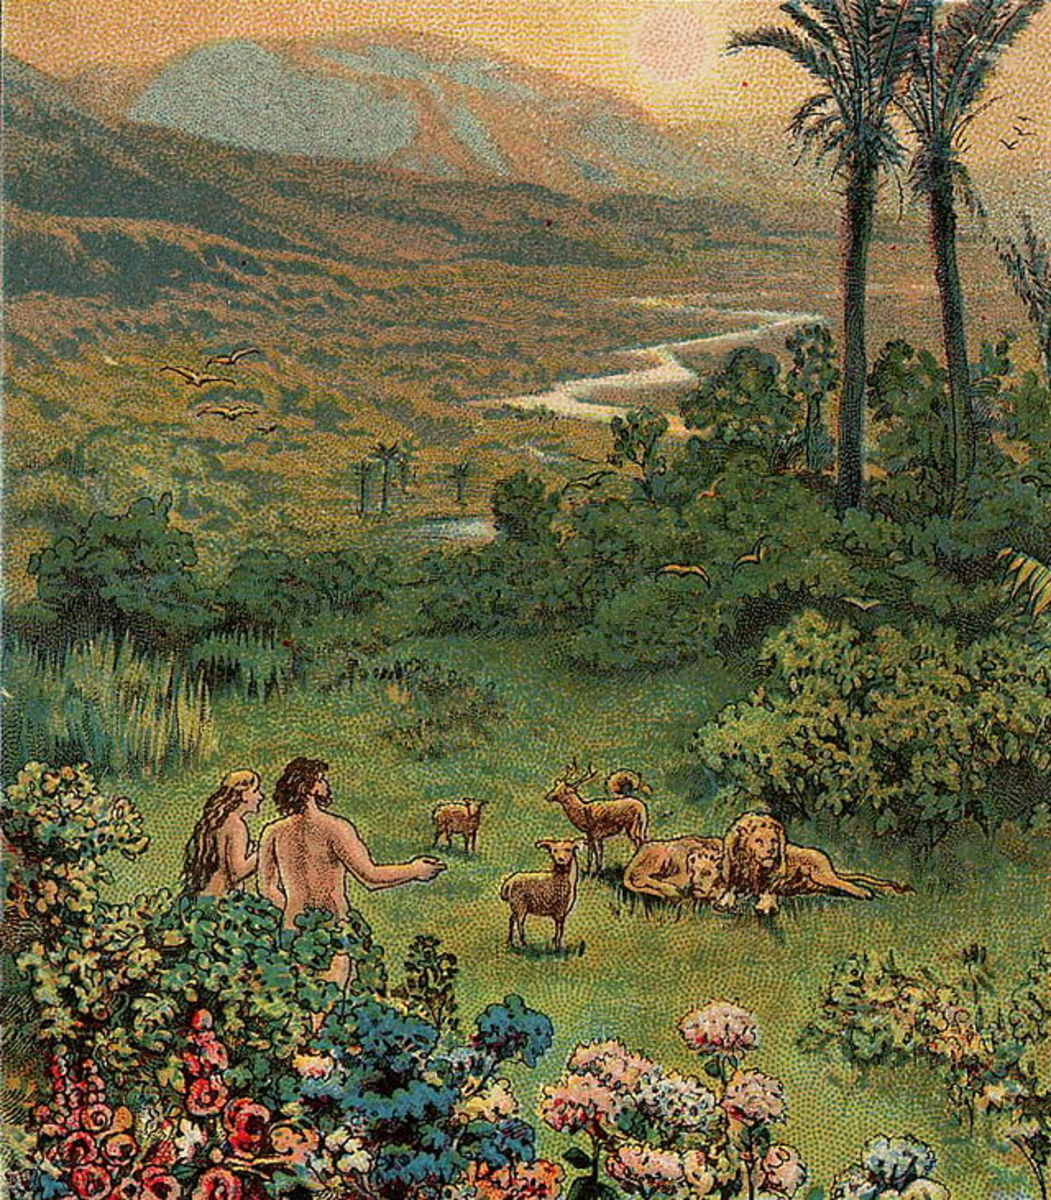 What Was Important About the Garden of Eden?